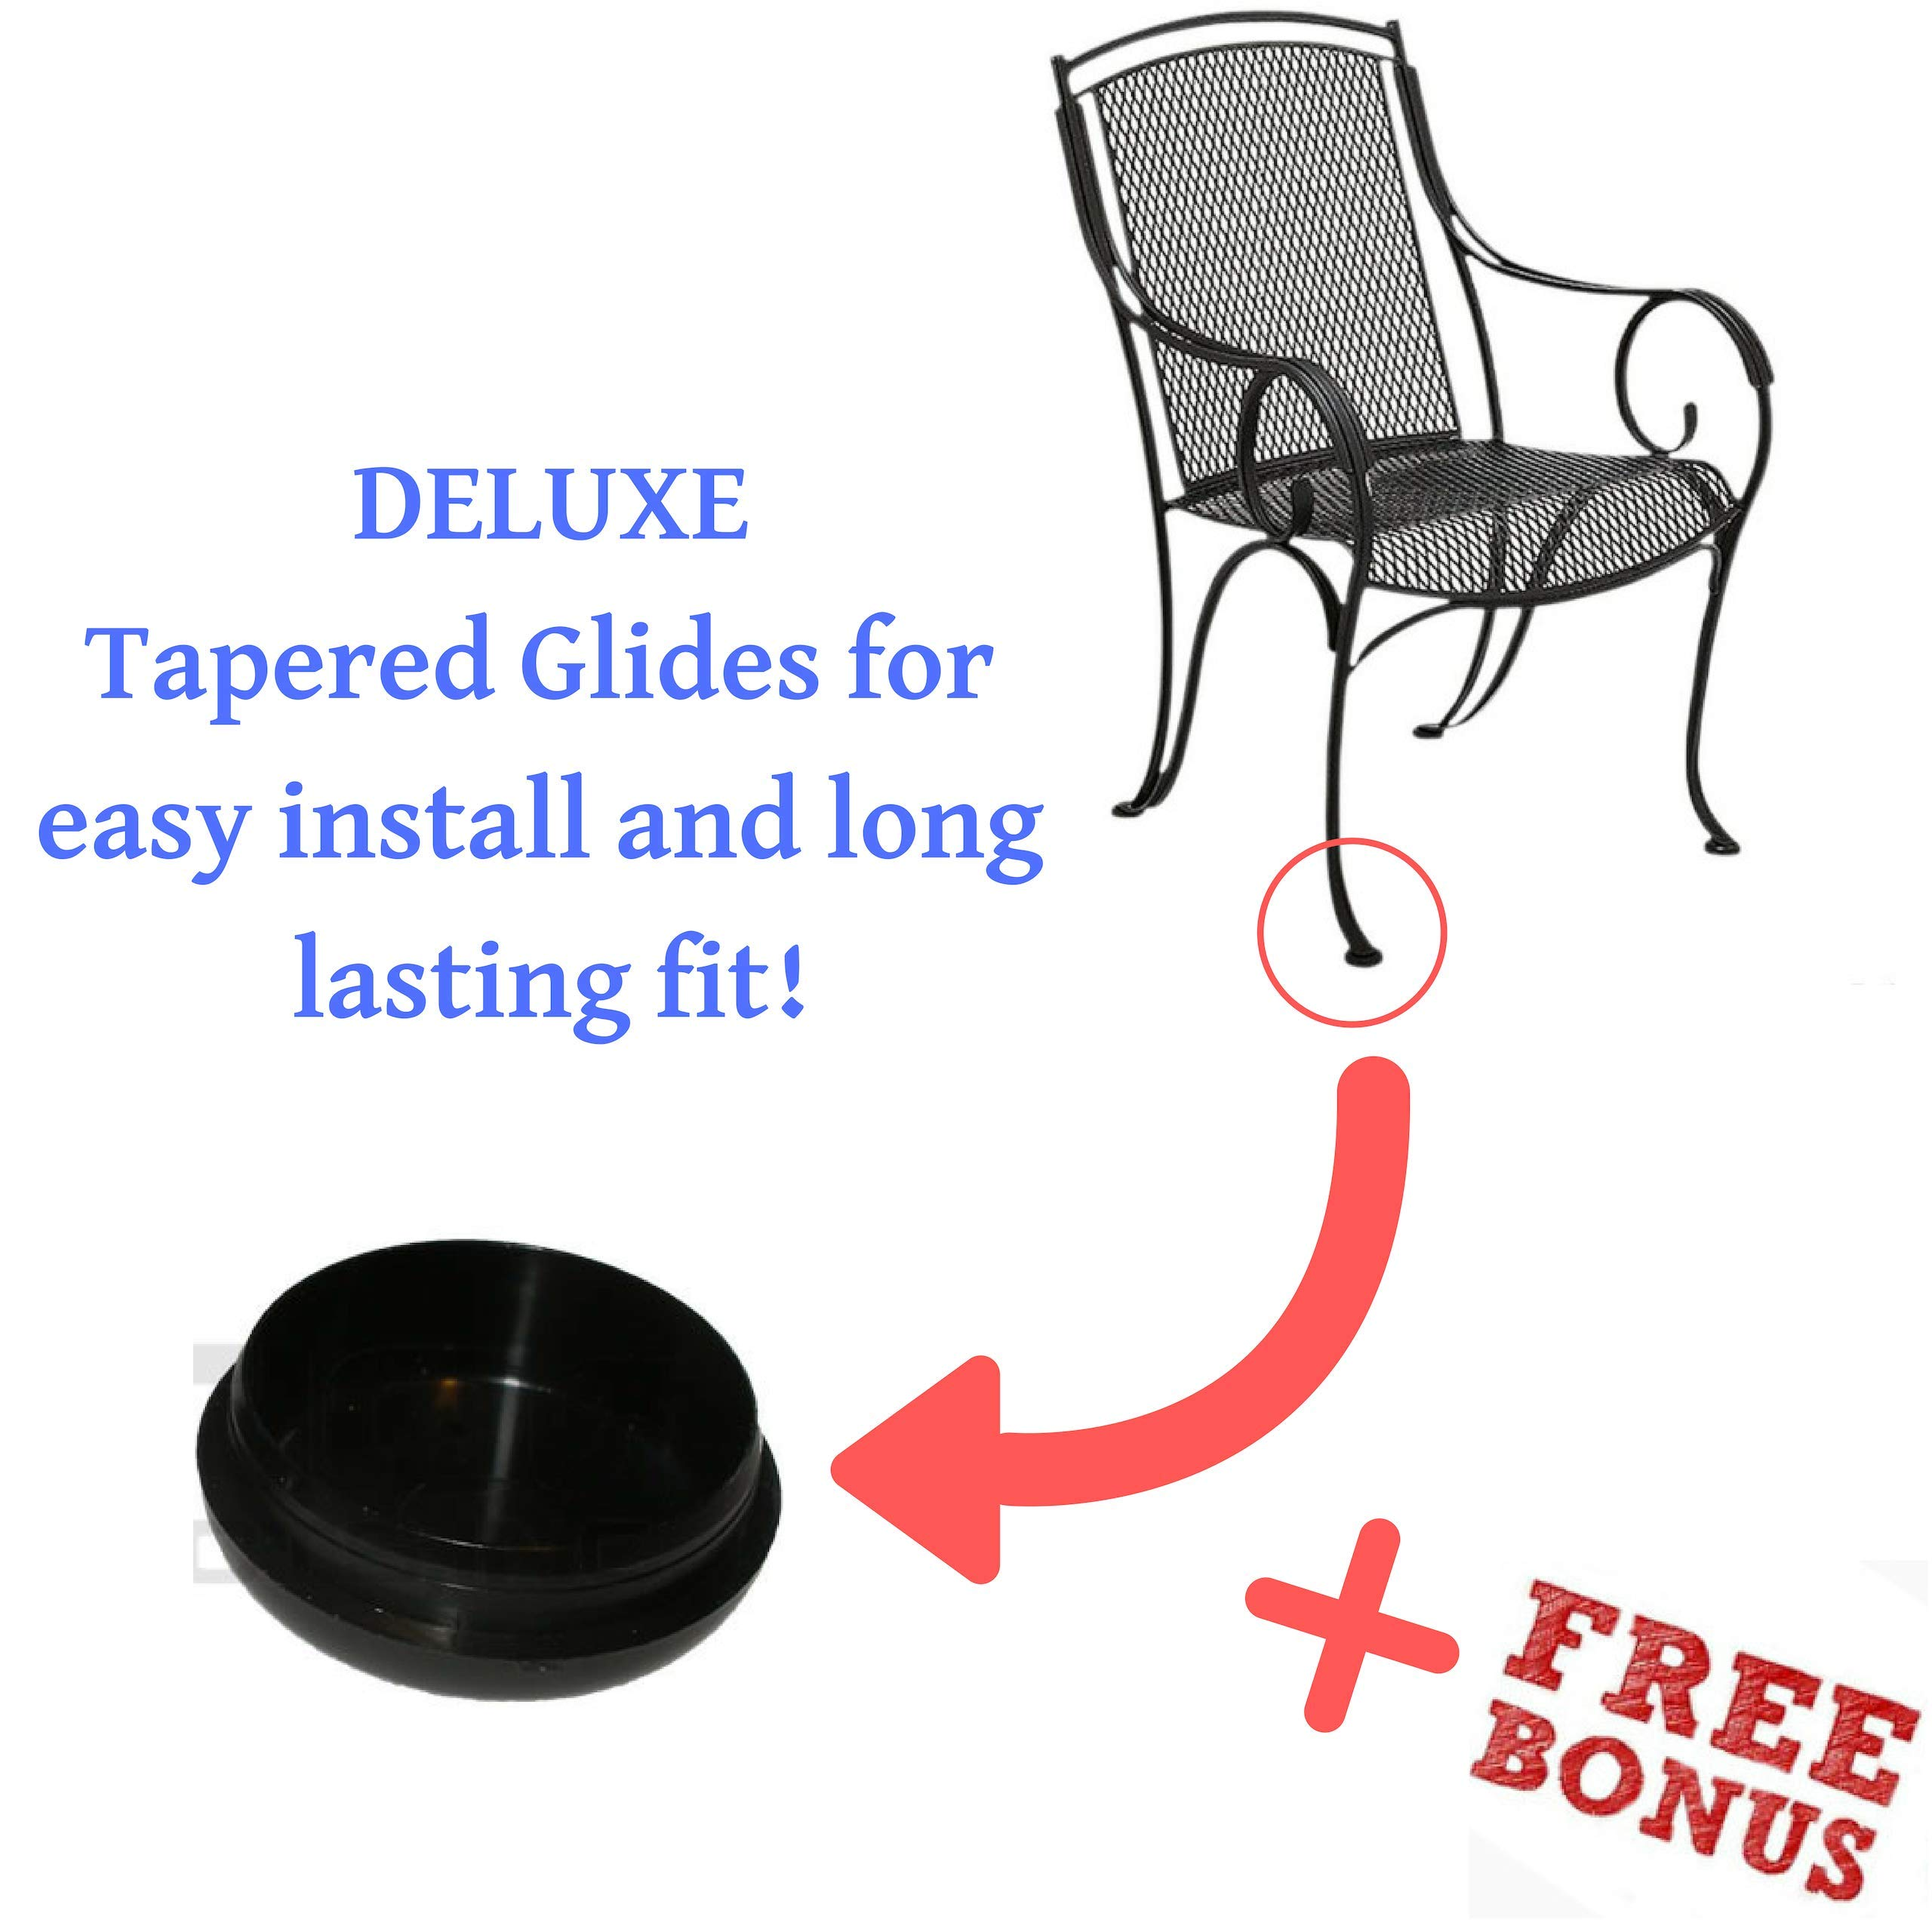 Patio Furniture Deluxe Feet Protectors 1.5'' - 28 Pack for Wrought Iron Outdoor Patio Chairs, Tables-Step-By-Step Instructions now included-Non-Scratching